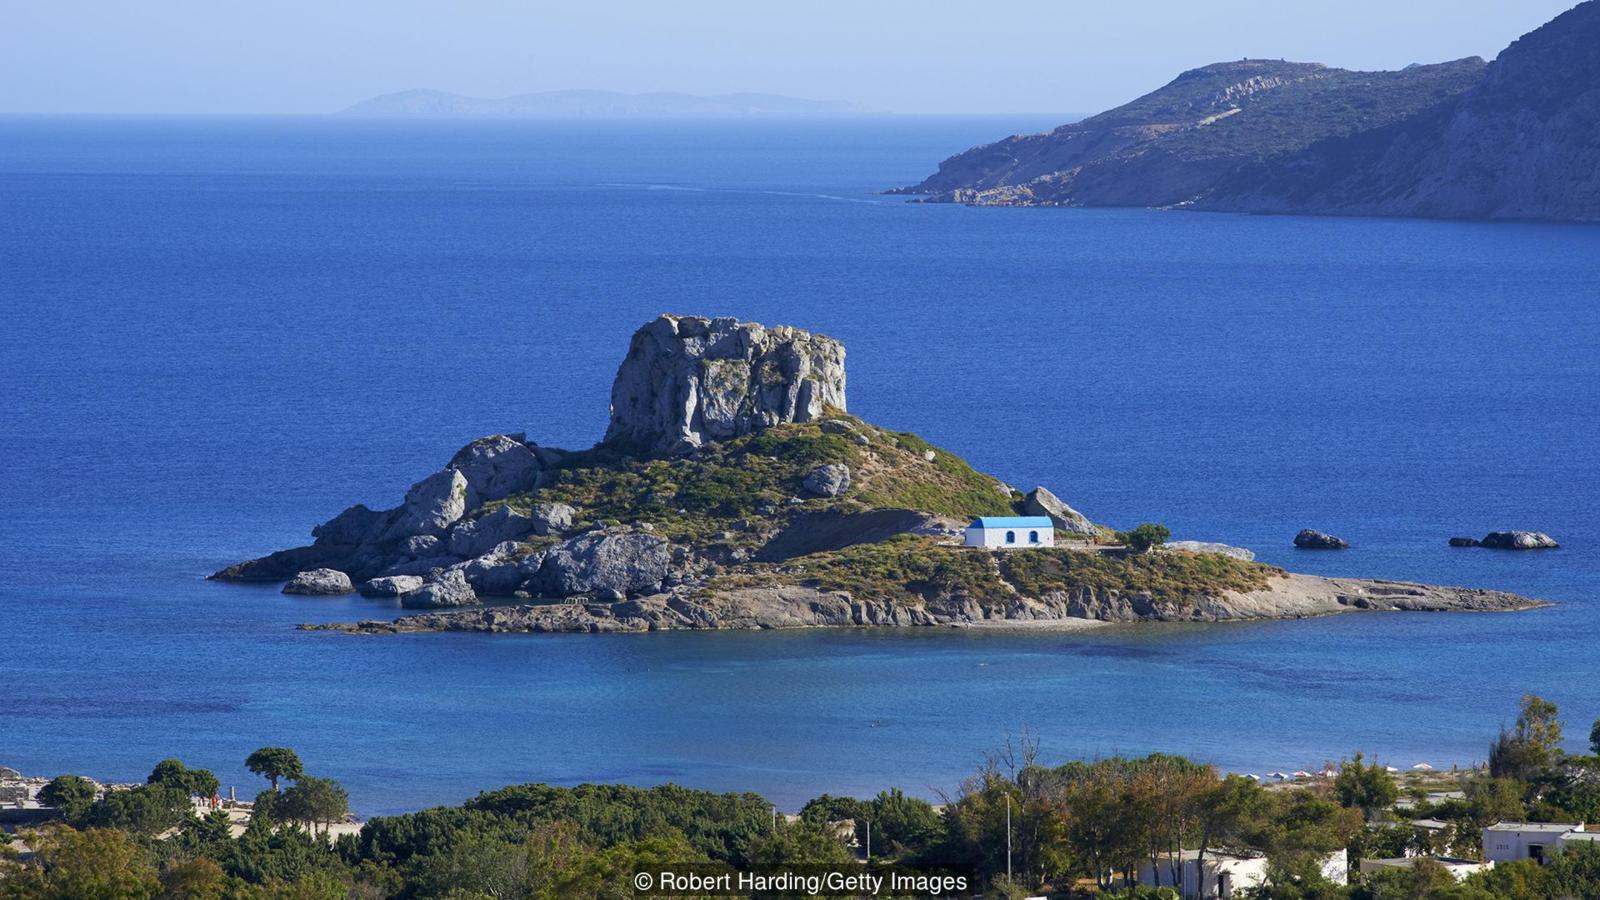 Kastri Island, Kefalos Bay, Kos, Dodecanese, Greek Islands, Greece, Europe